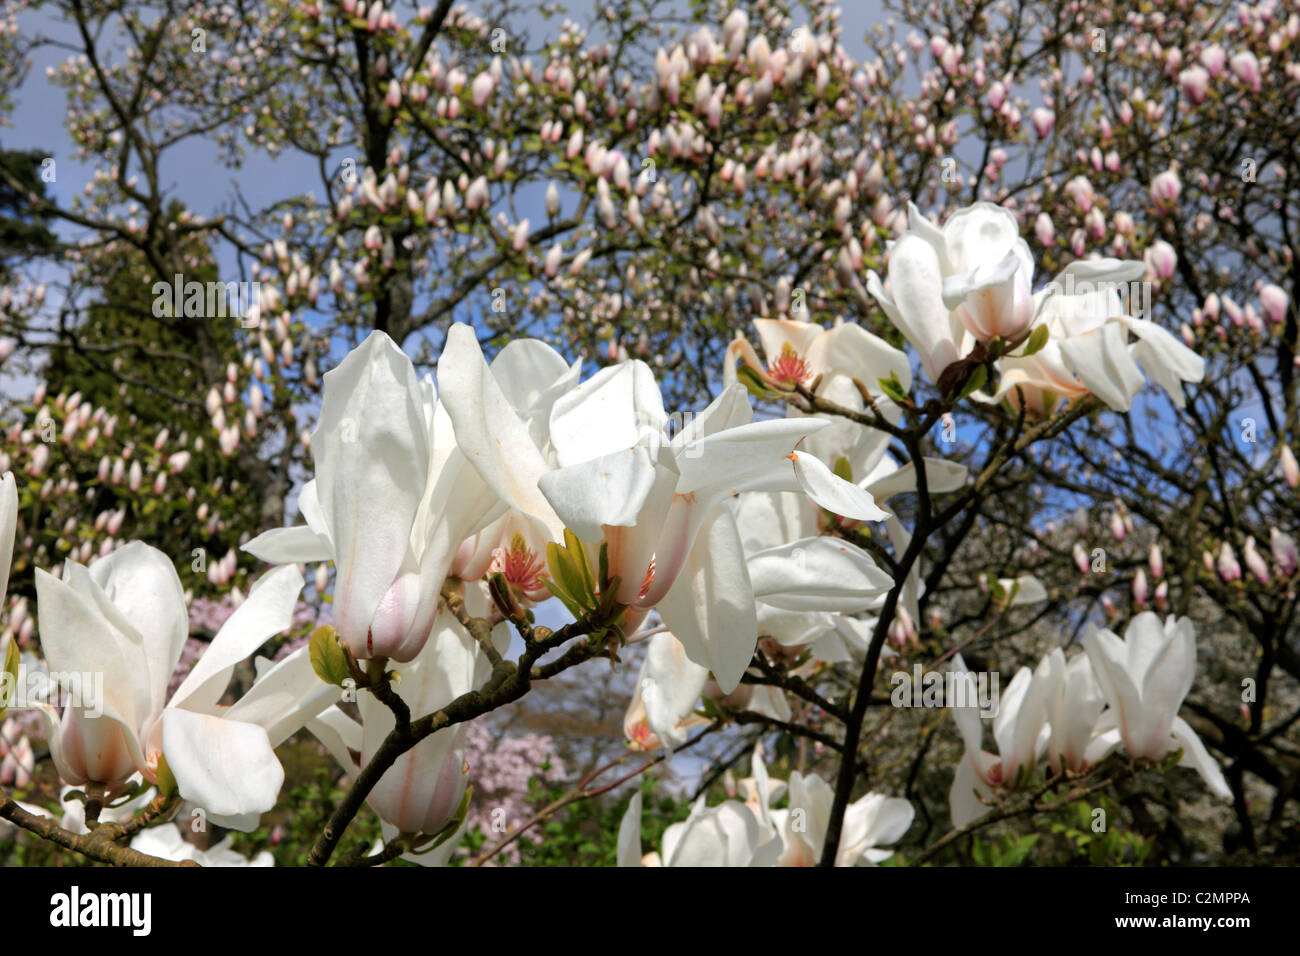 Large White Blooms Of The Spring Flowering Magnolia Tree Sussex